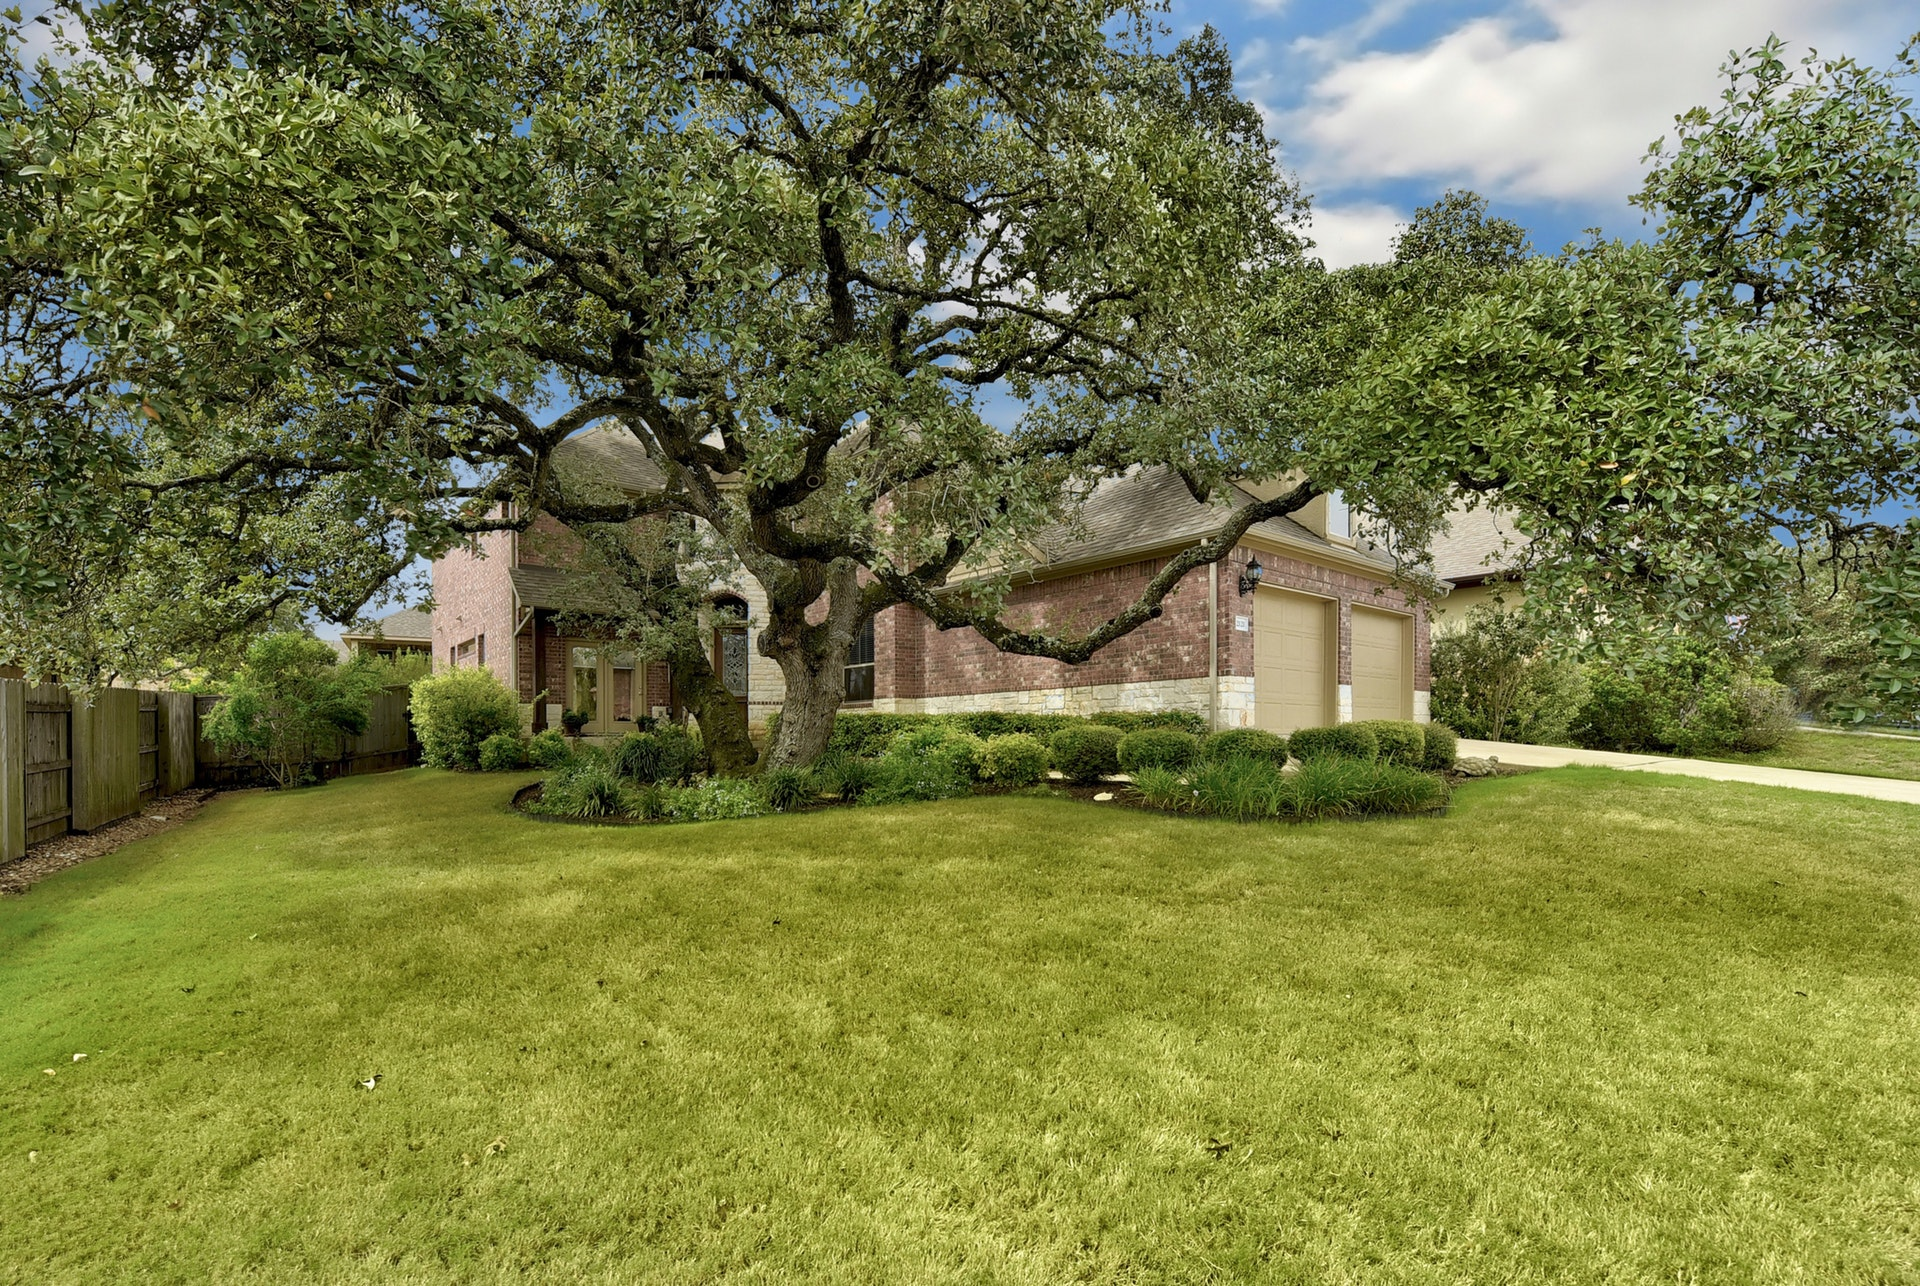 2121 Turtle Mountain - Century Oak